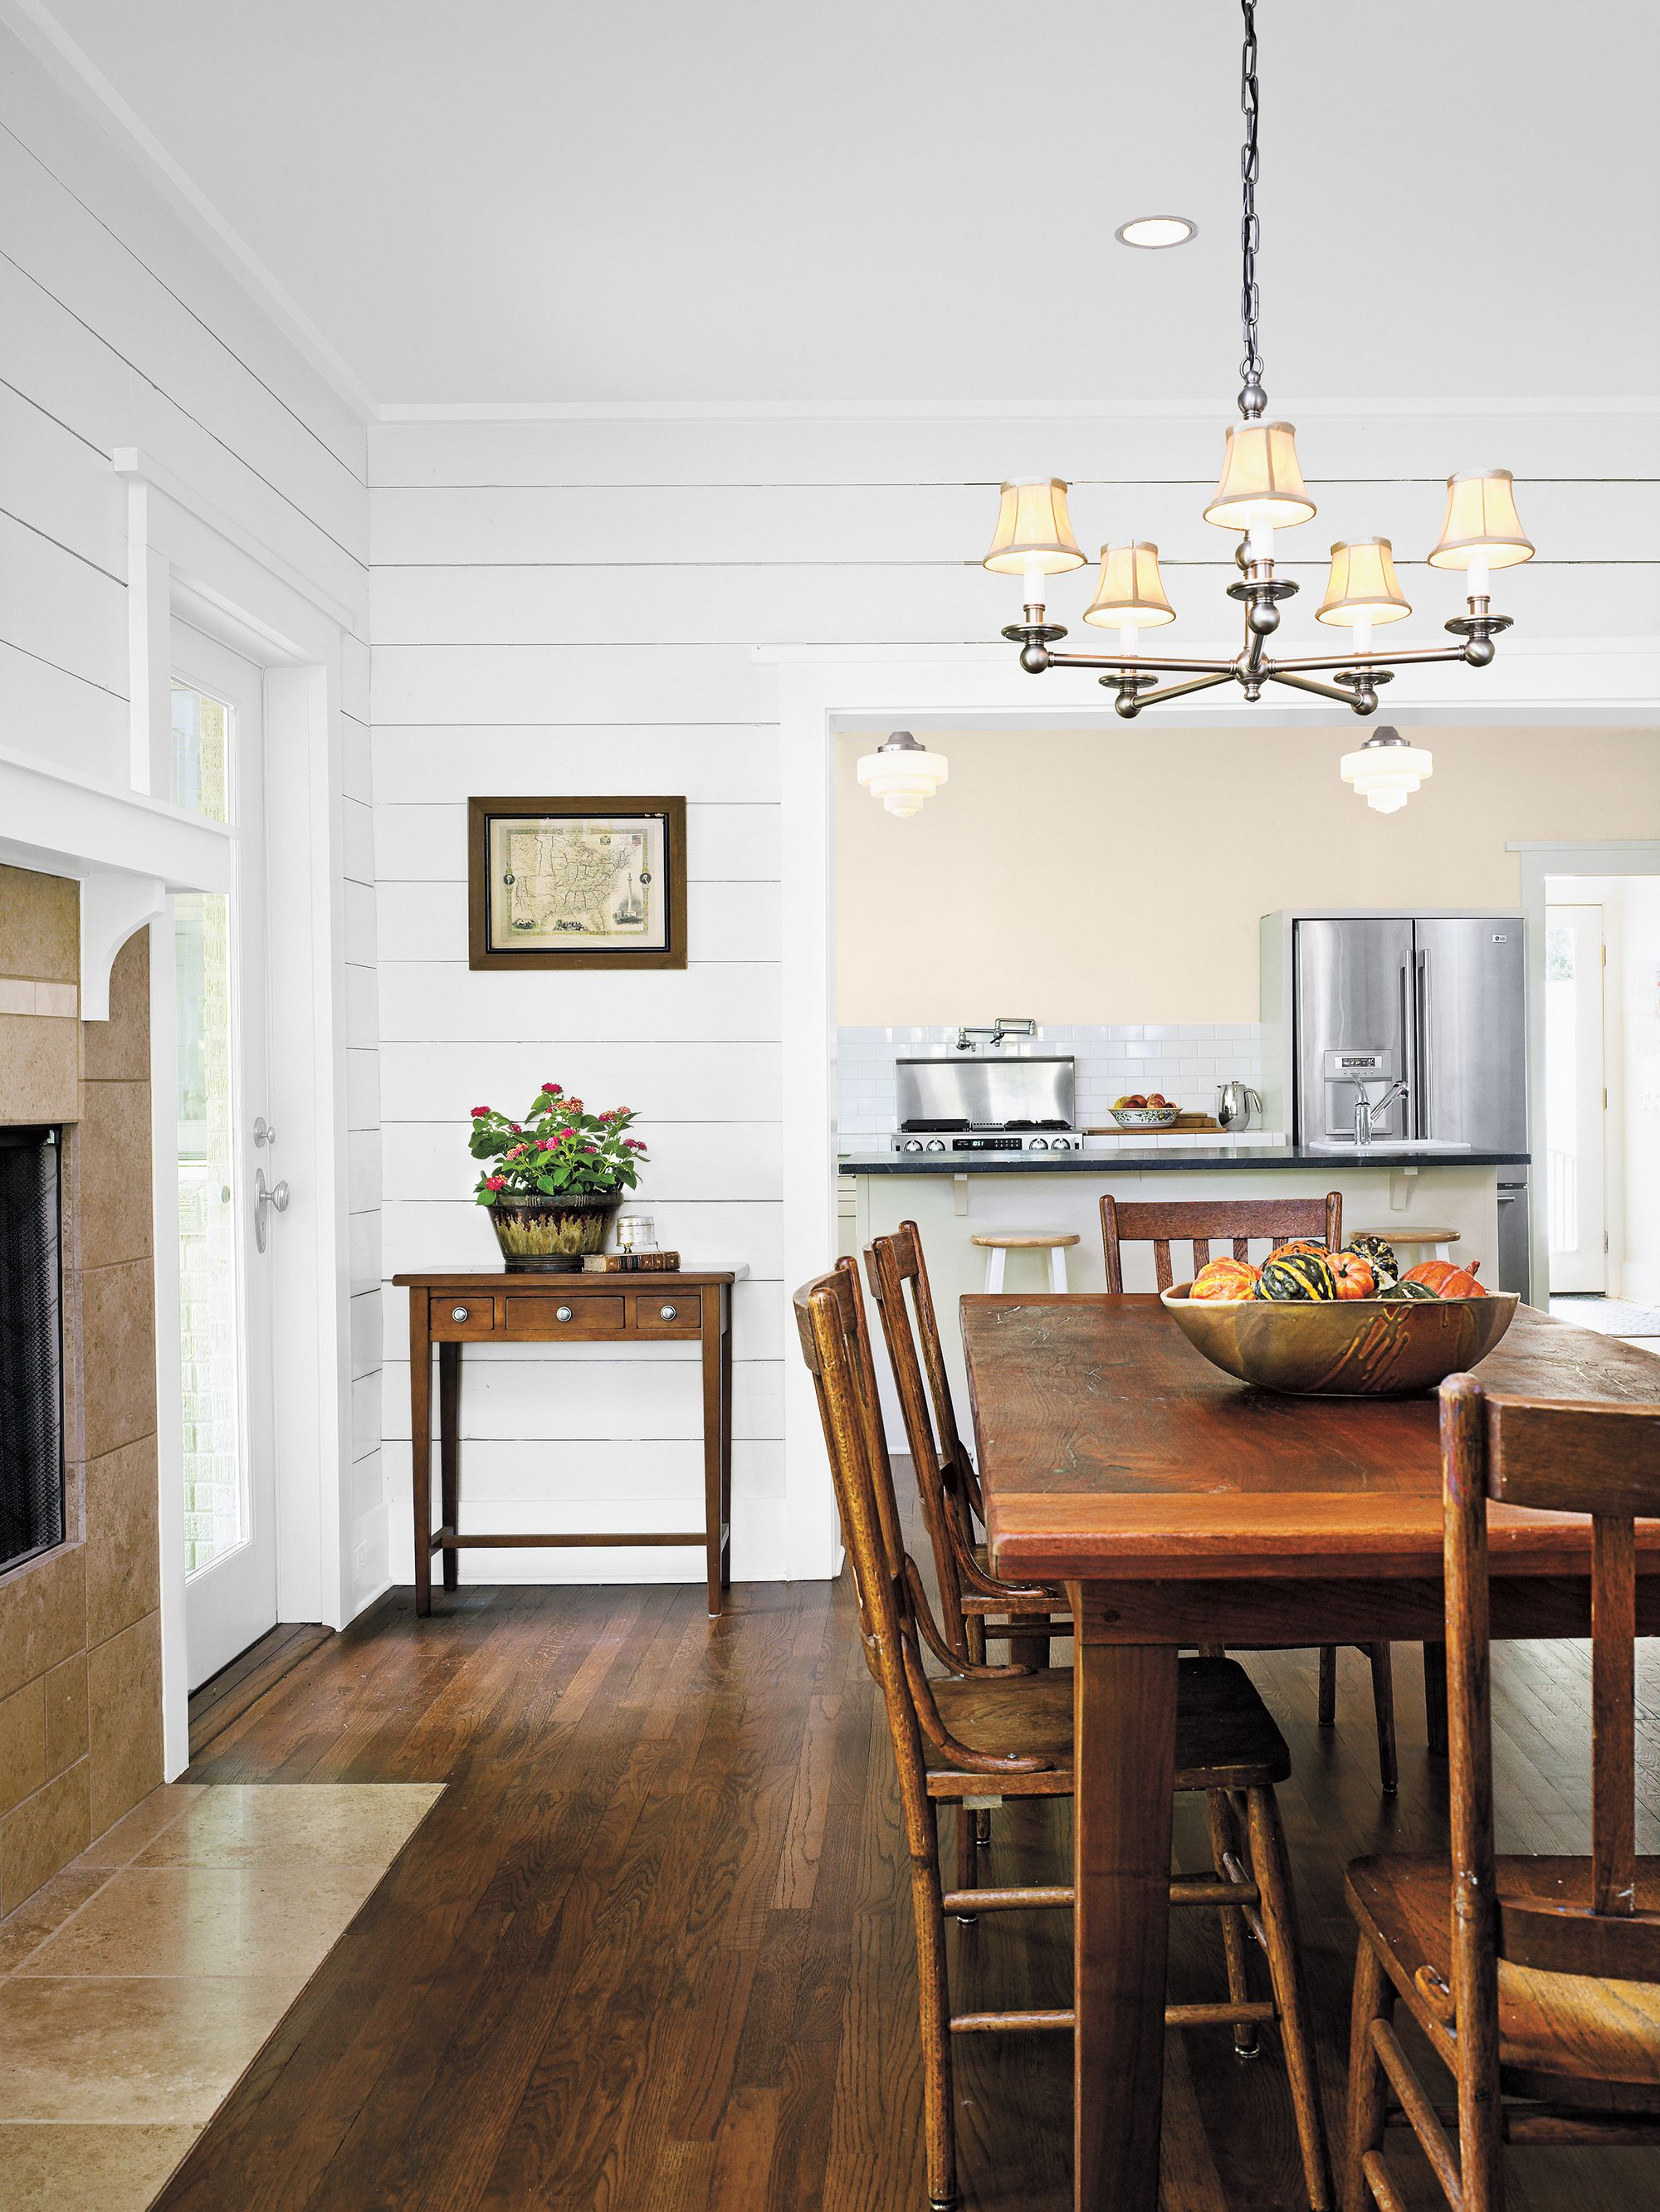 All About Prefinished Wood Floors (With images) Wood